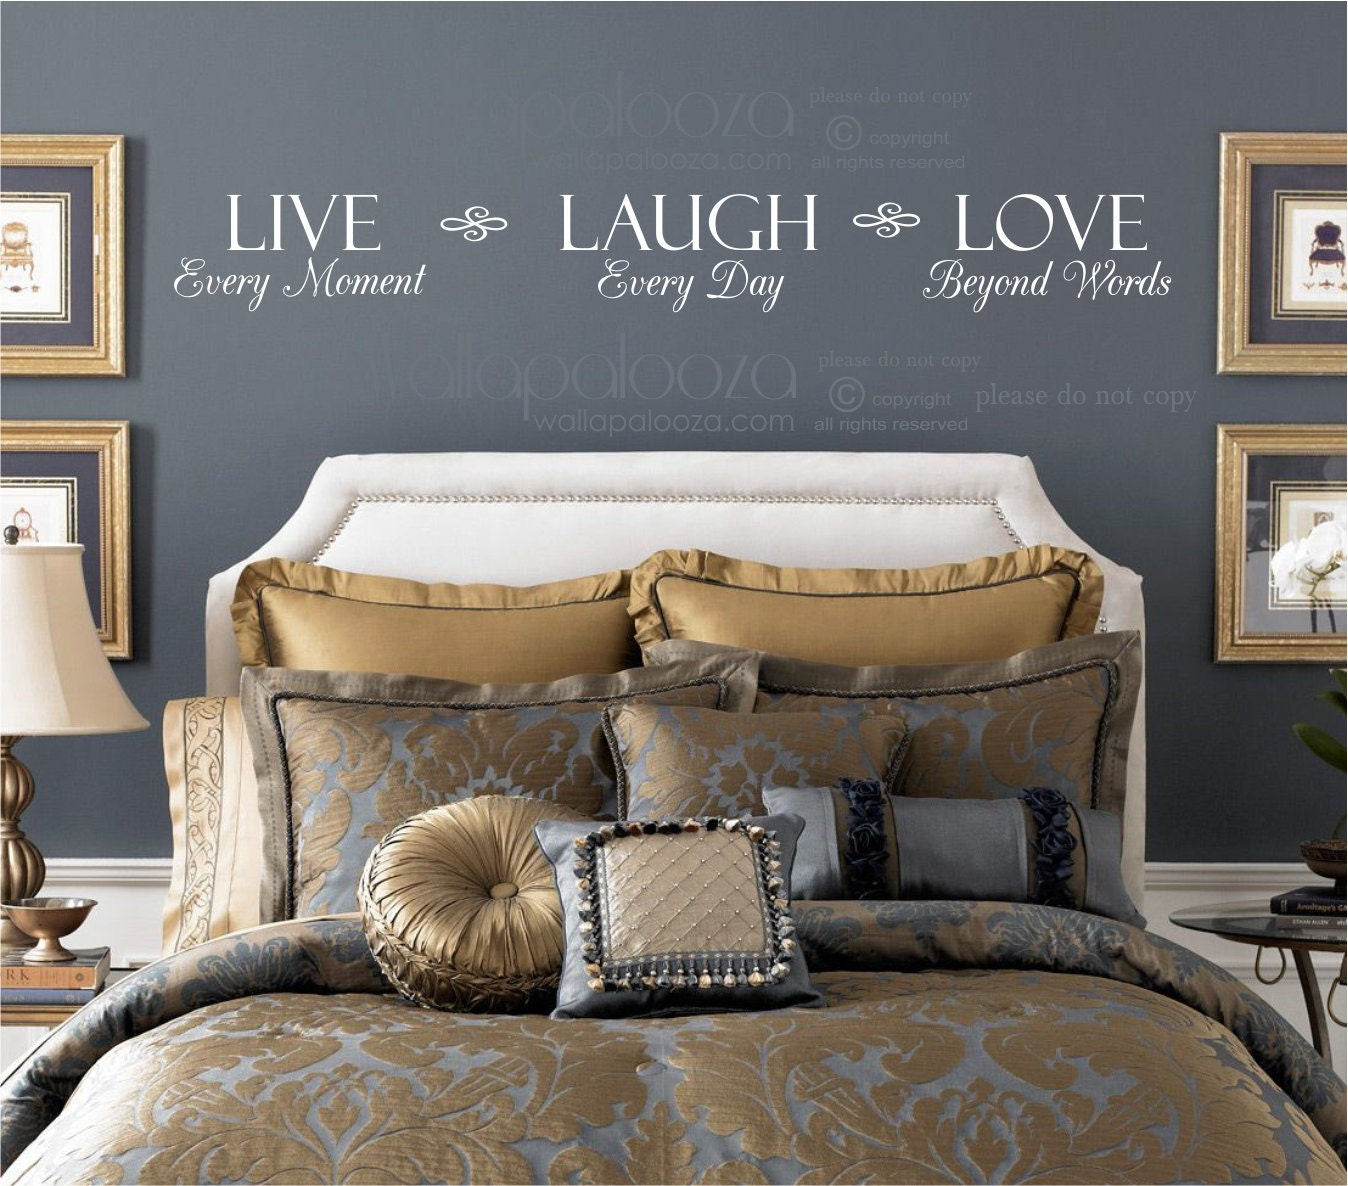 Live Every Moment Laugh Every Day Love Beyond Words Wall Decal